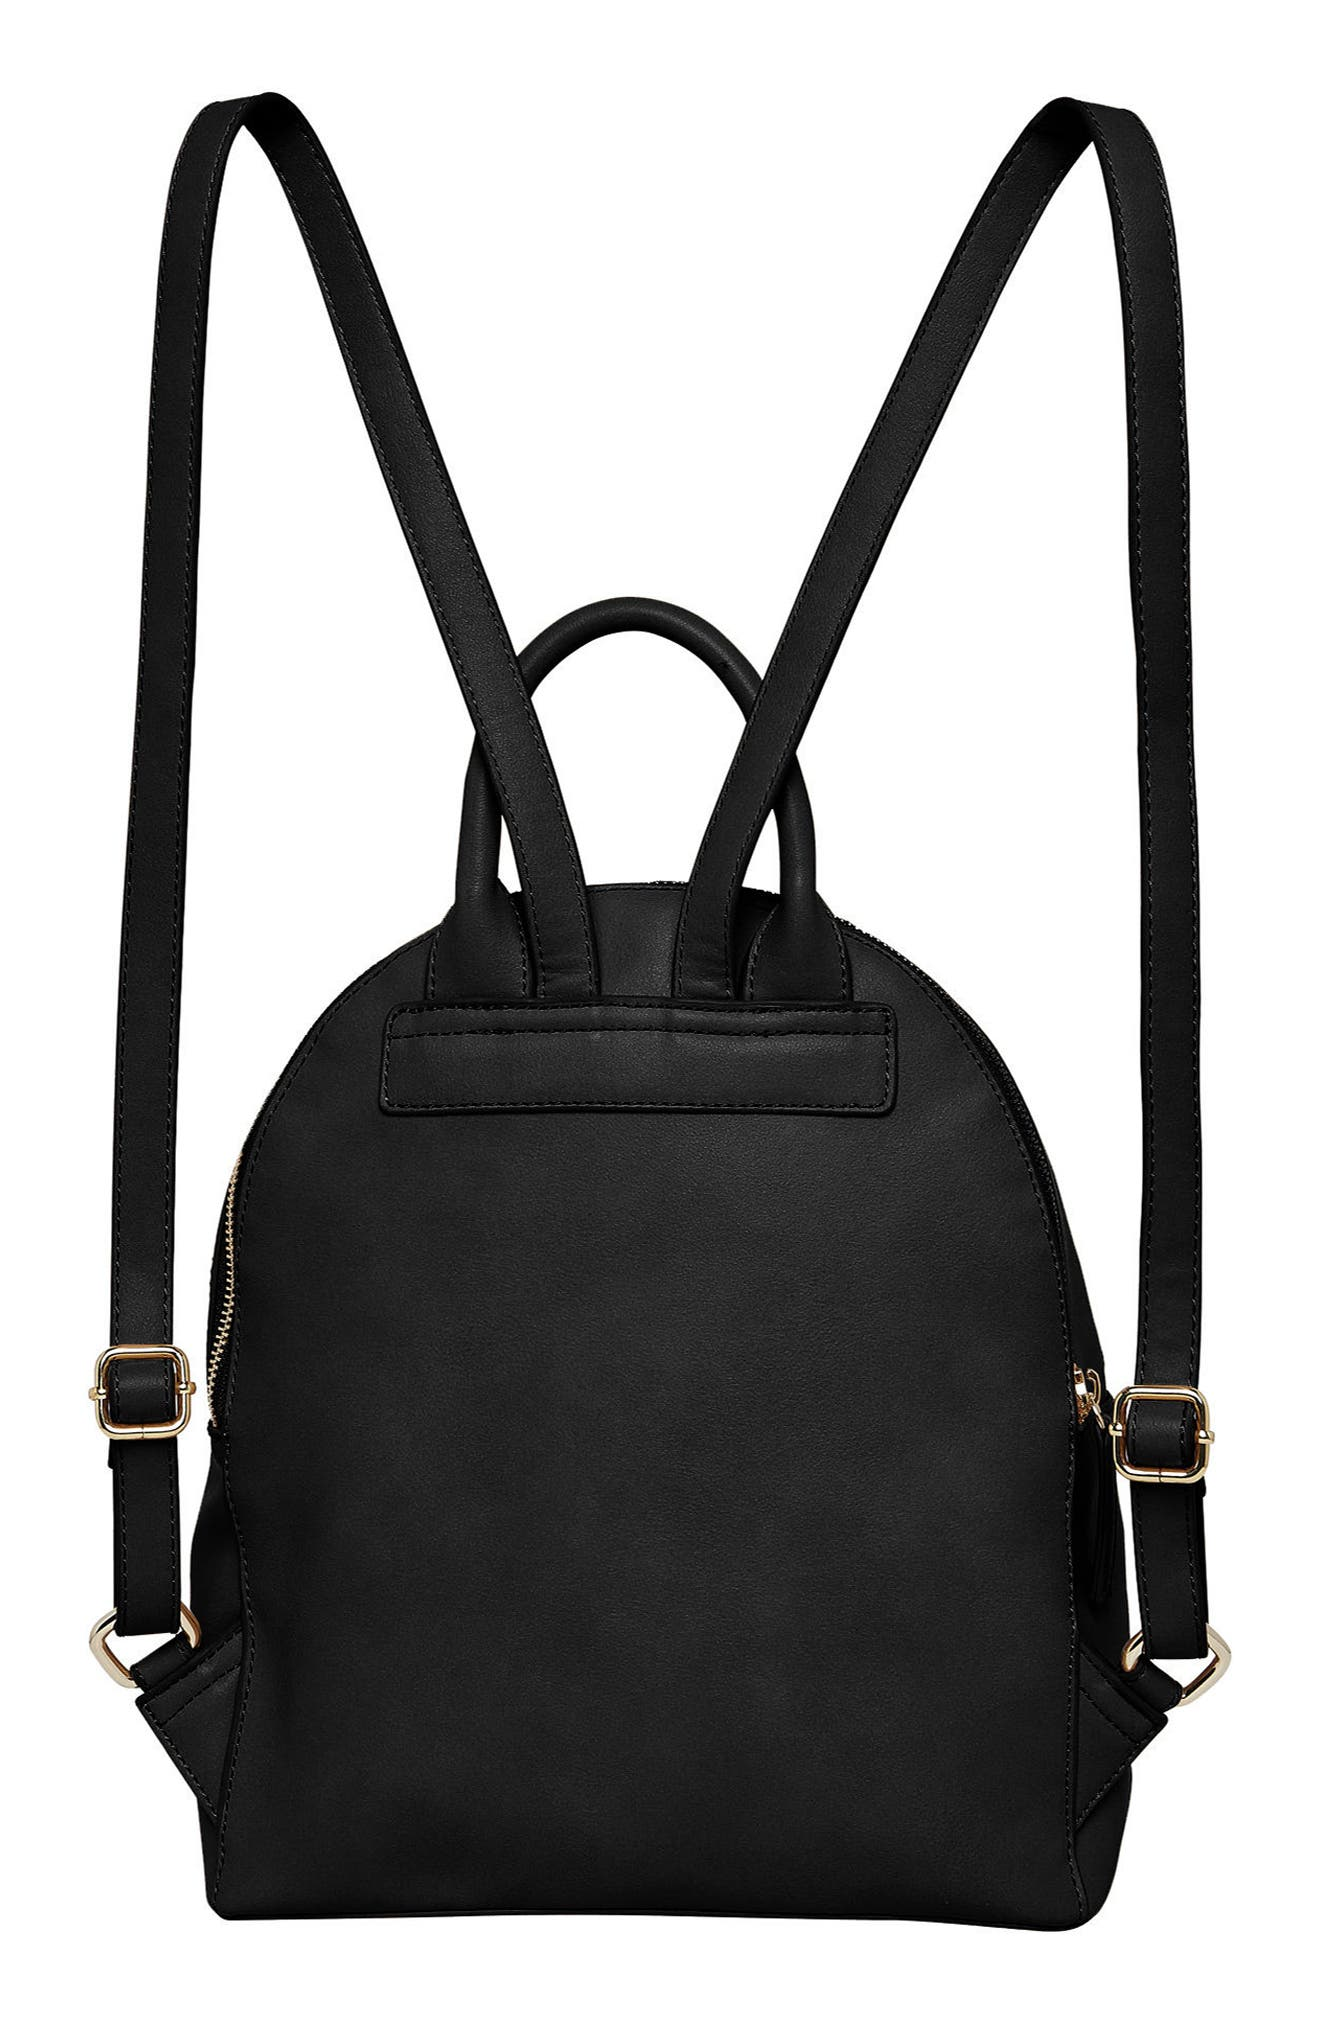 Magic Vegan Leather Backpack,                             Alternate thumbnail 3, color,                             001